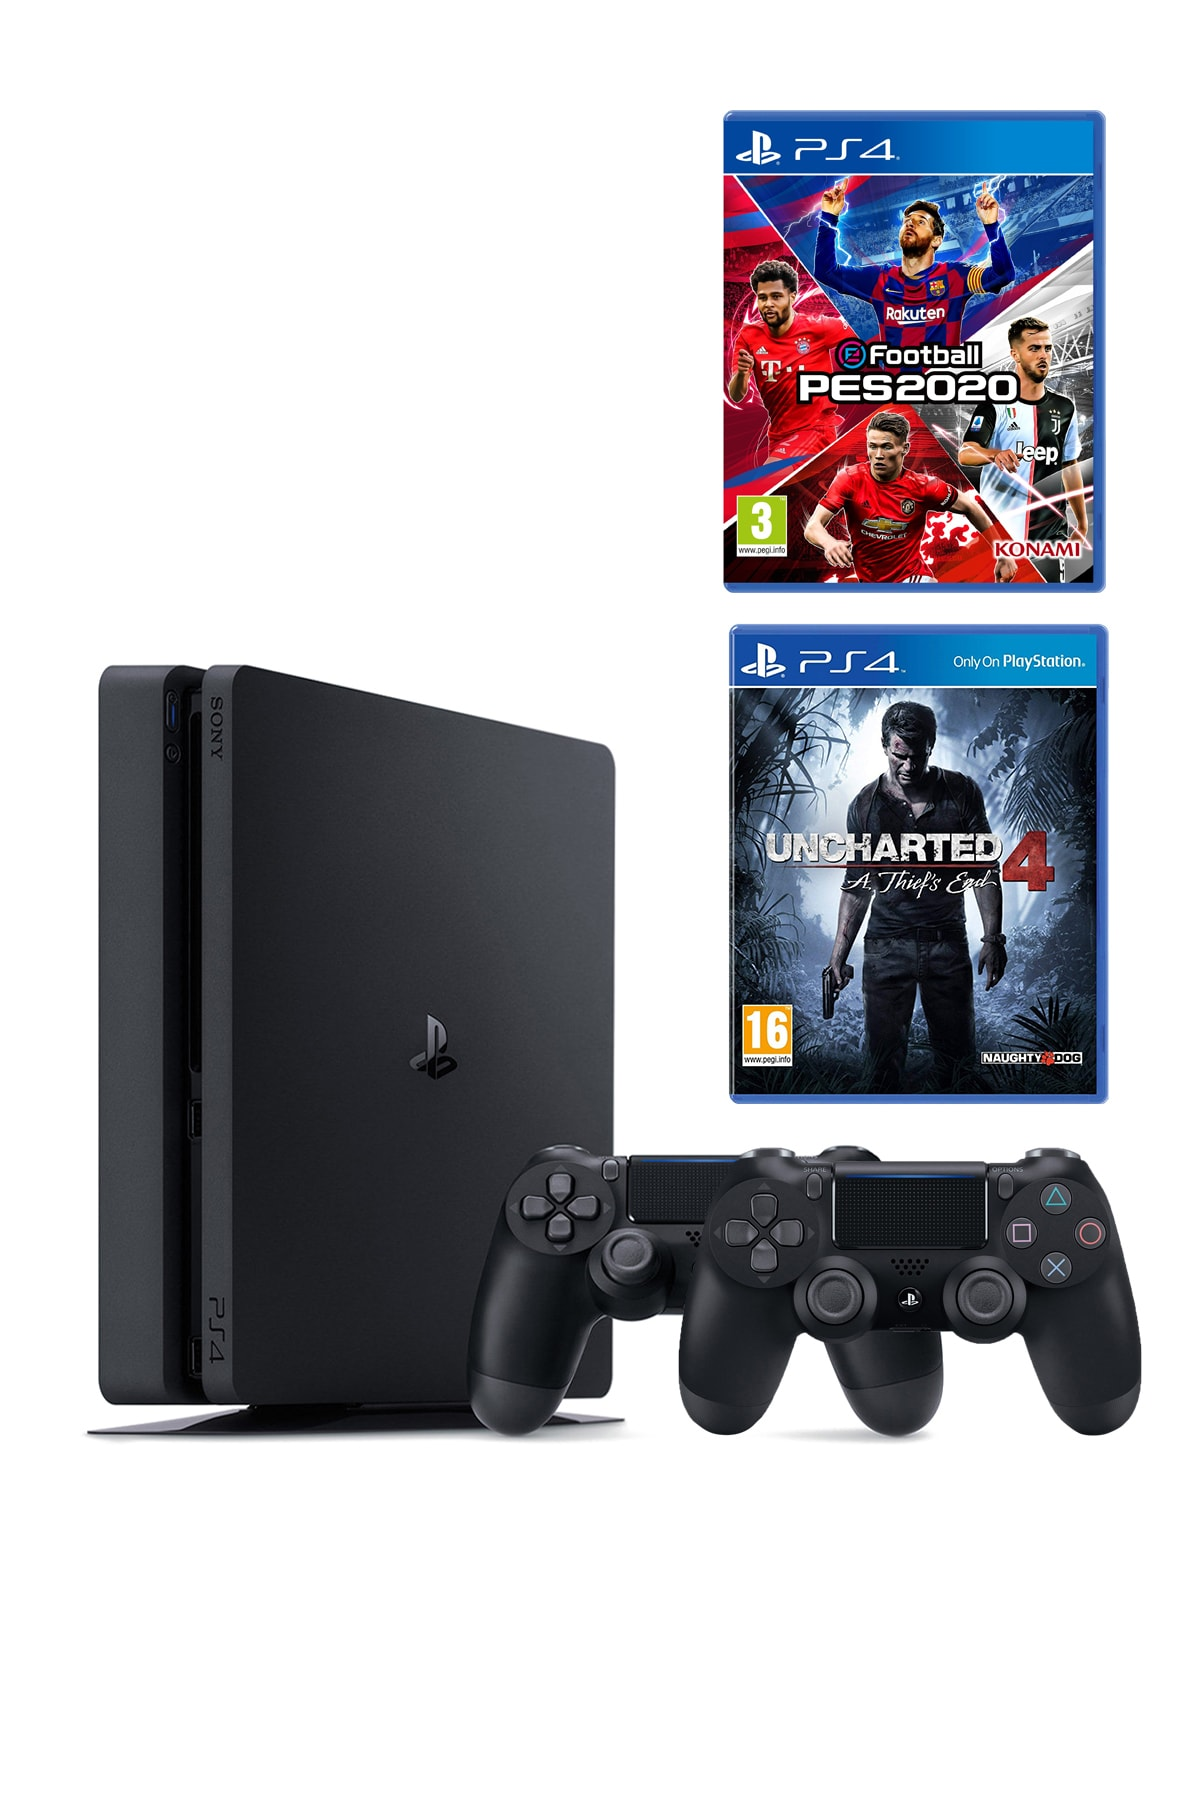 Sony Playstation 4 Slim 500 GB + 2. PS4 Kol + PS4 Pes 2020 + PS4 Uncharted 4 1